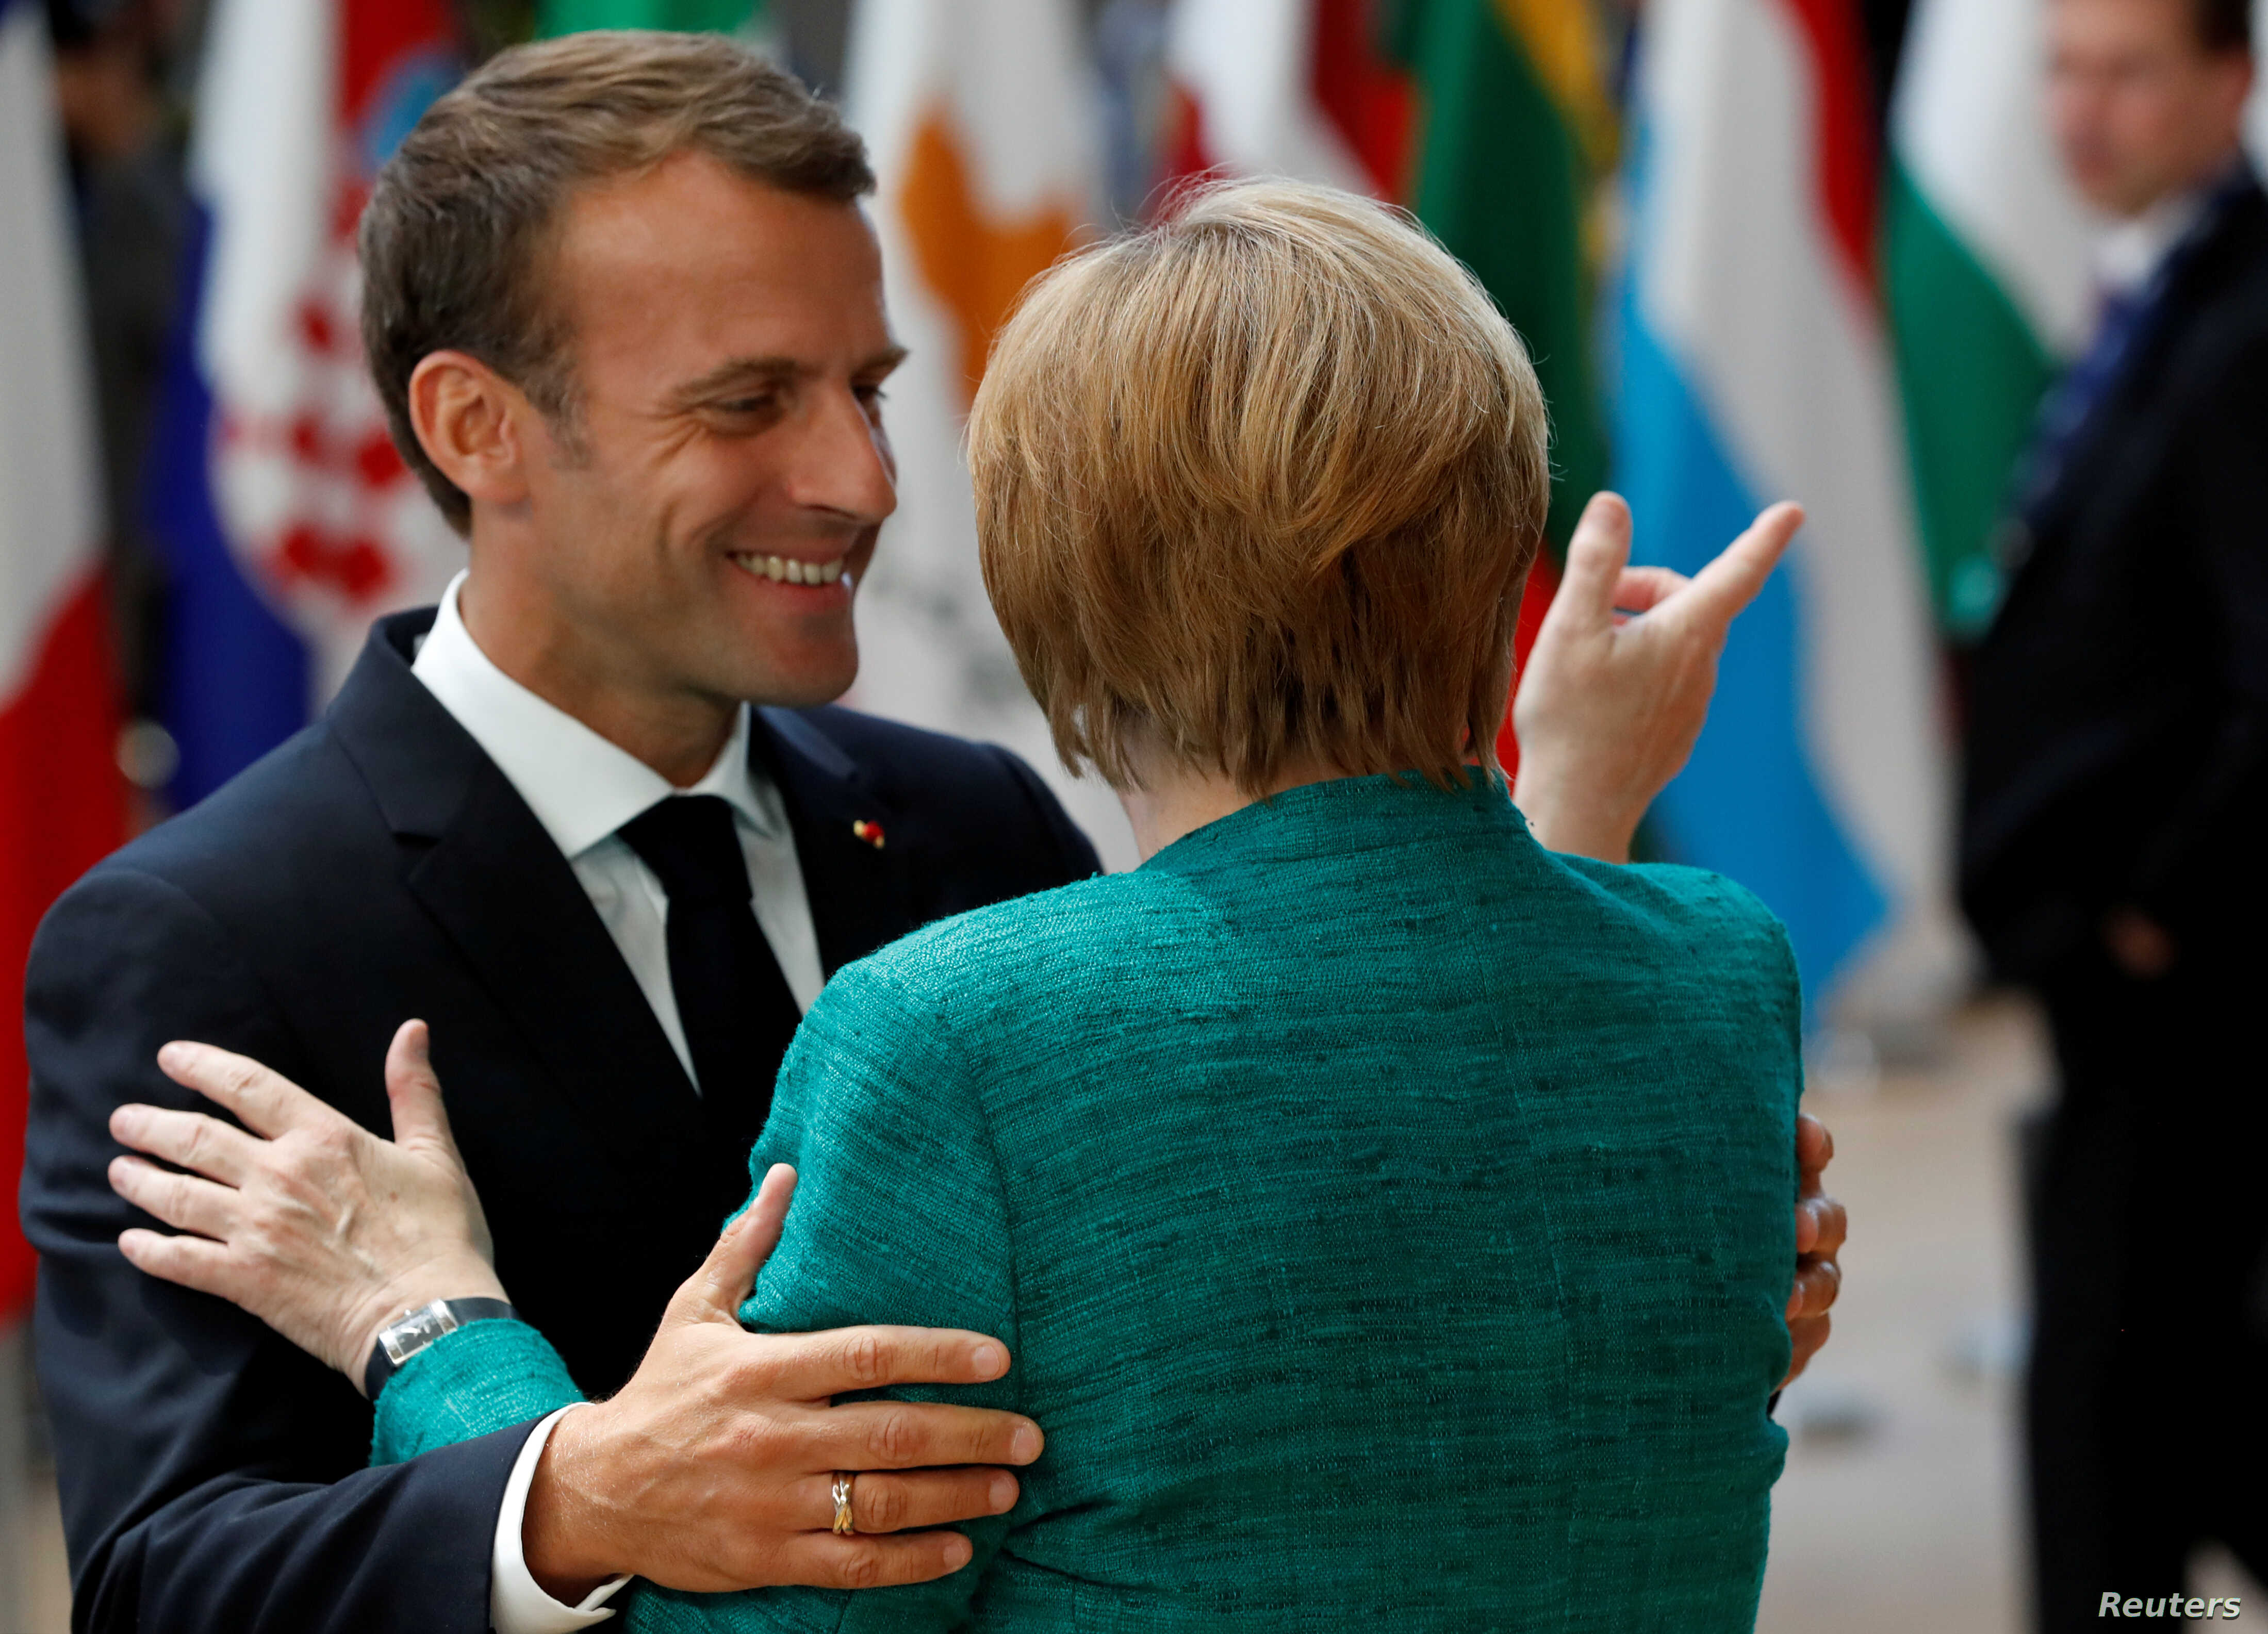 German Chancellor Angela Merkel and French President Emmanuel Macron greet each other as they arrive at an European Union leaders summit in Brussels, June 28, 2018.